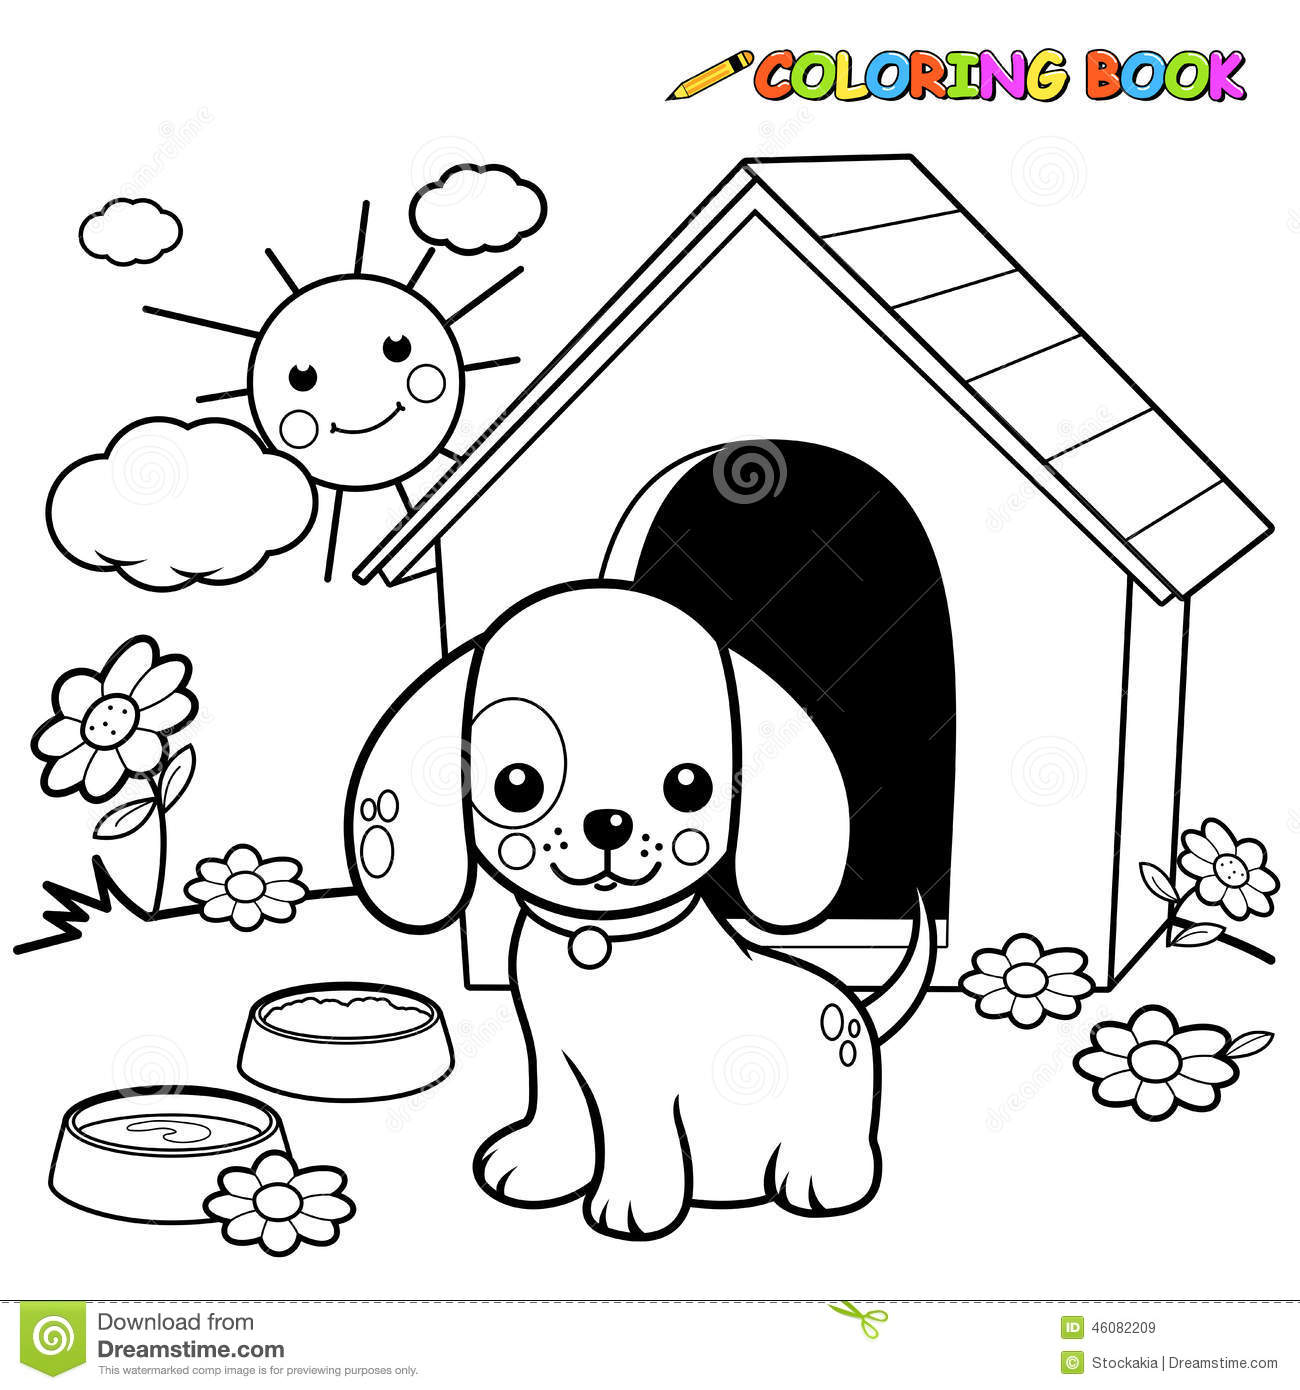 10 Cute Animals Coloring Pages additionally Ausmalbilder Katzen in addition Cachorro Para Colorir likewise Best Dog Coloring Books as well Pets Clipart. on chihuahua coloring pages for adults